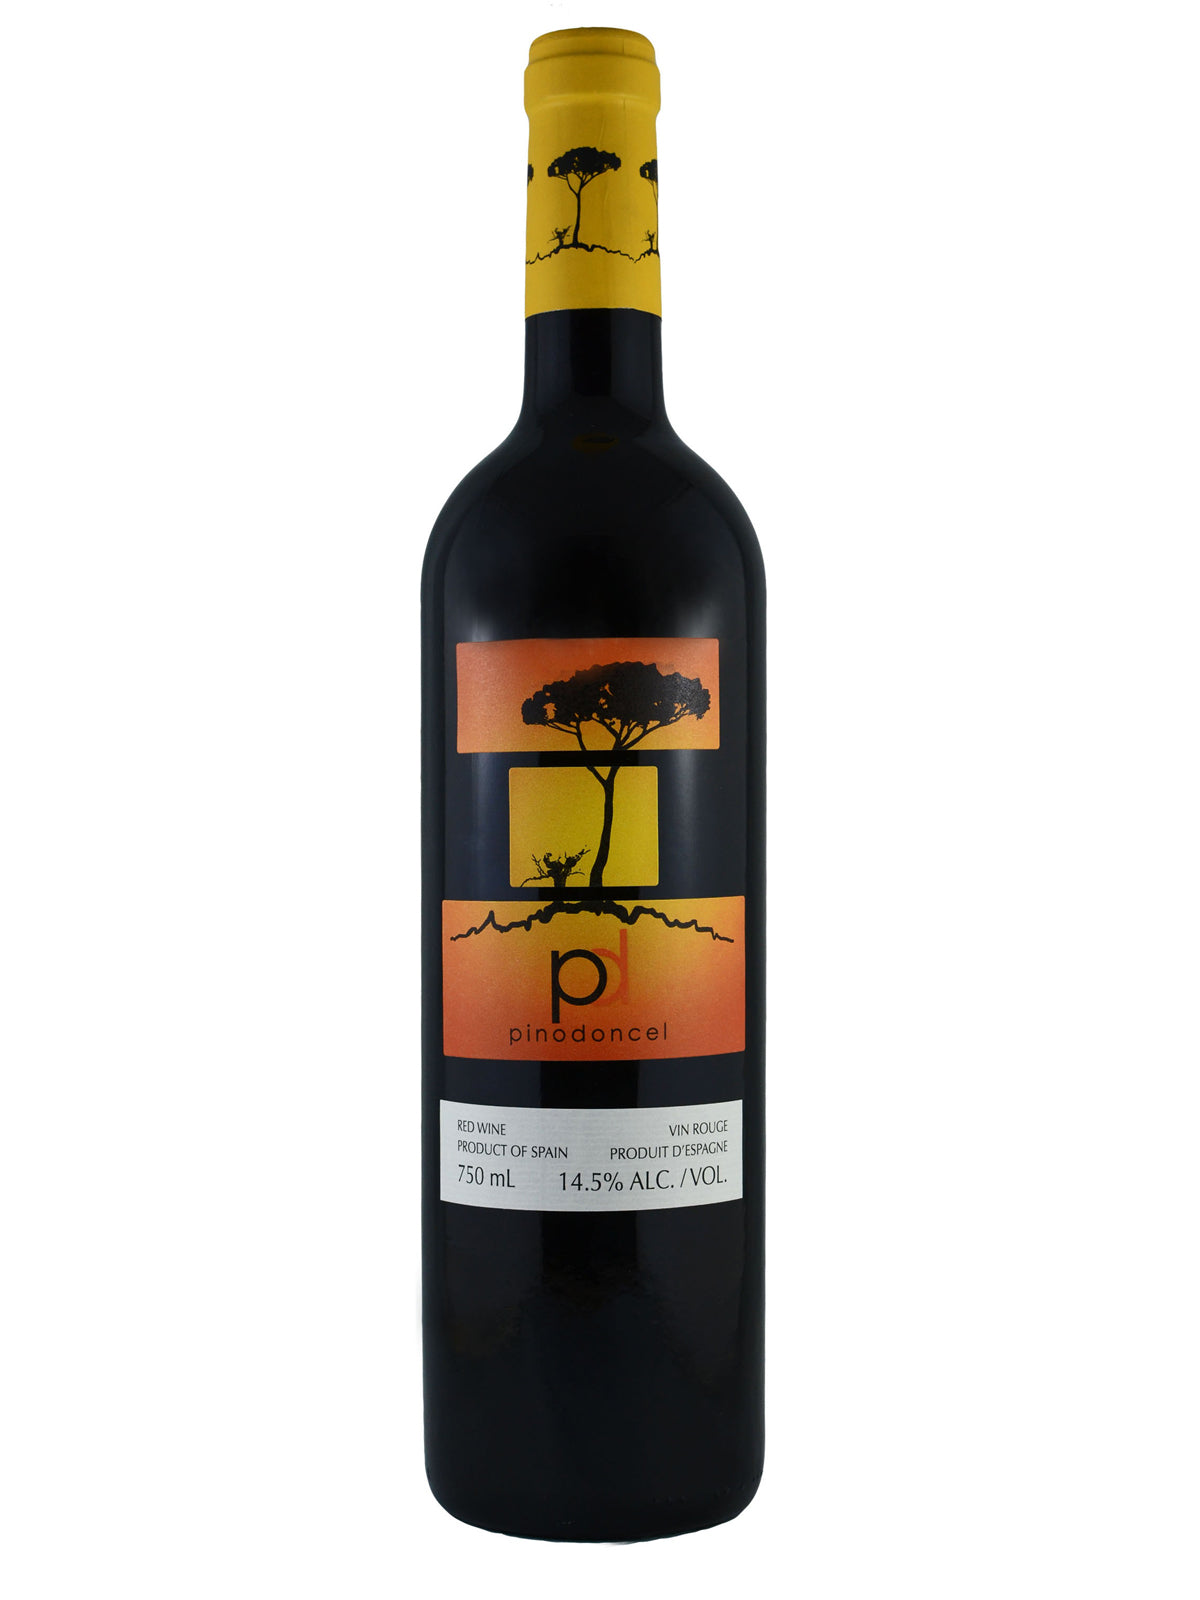 Pino Doncel red blend